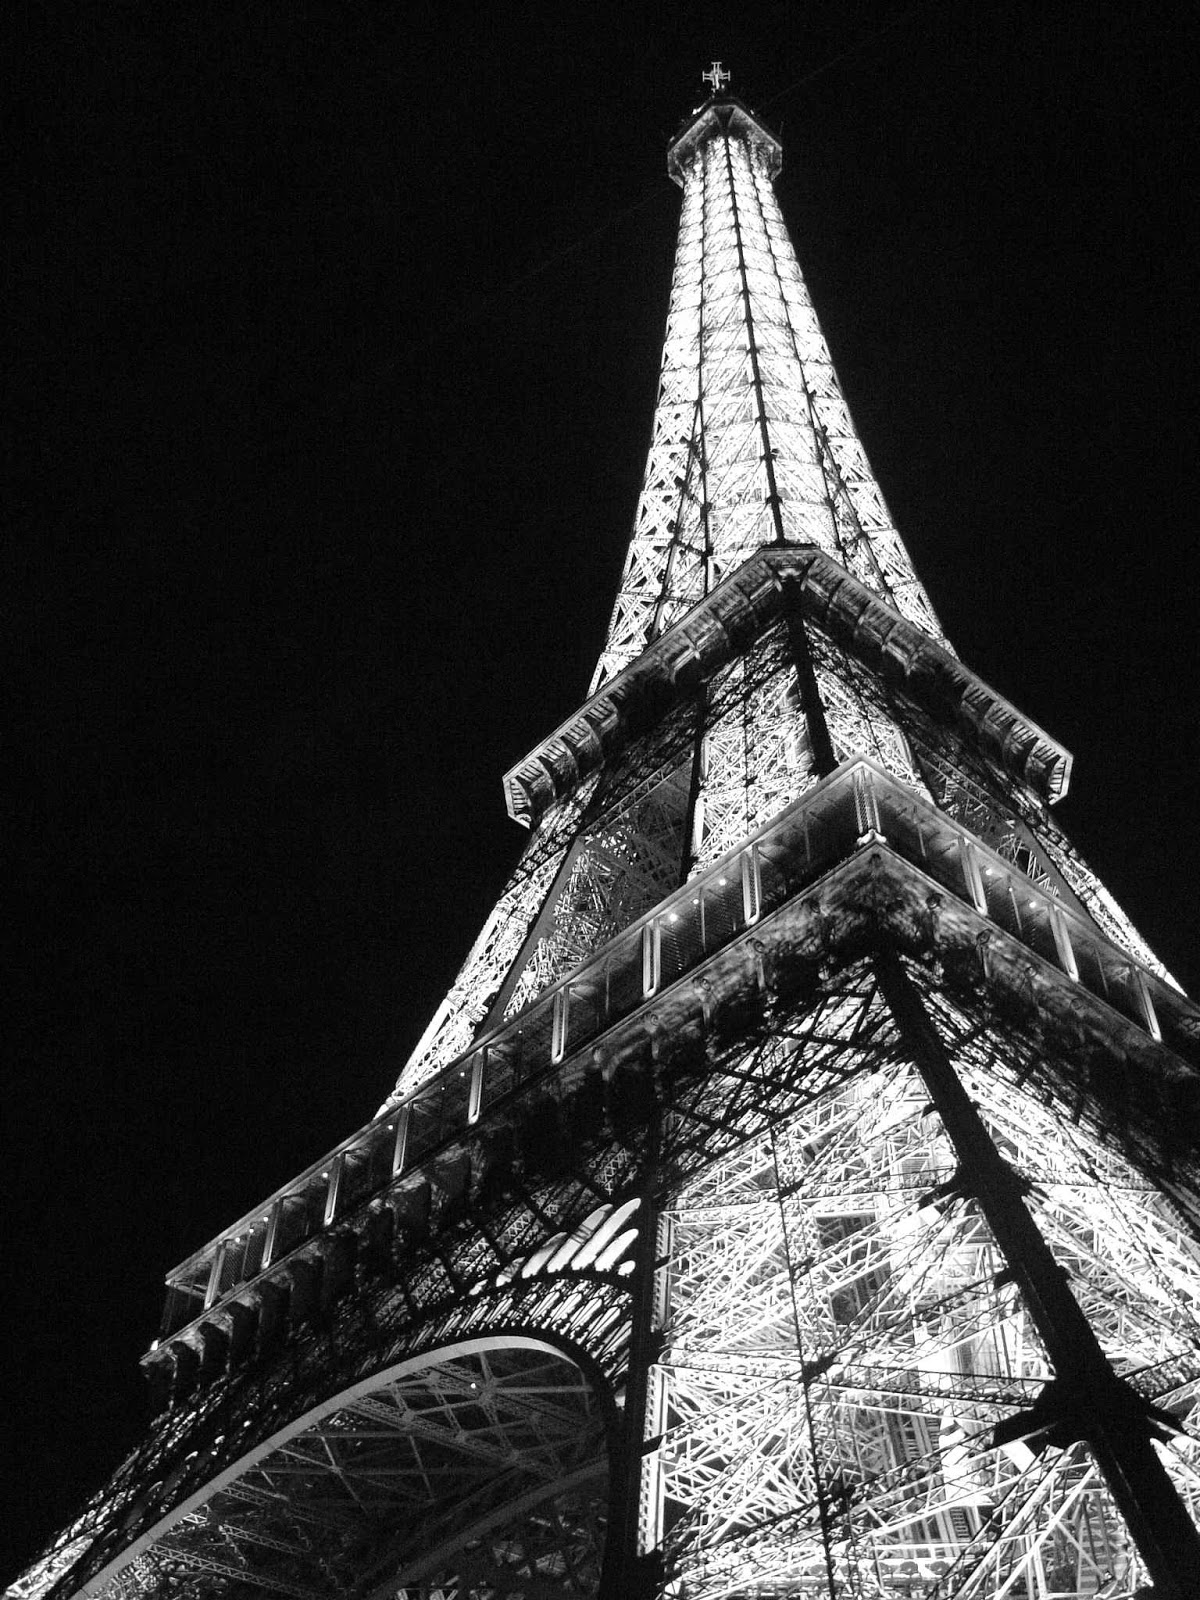 Eiffel Tower Paris at night Black and white Photo